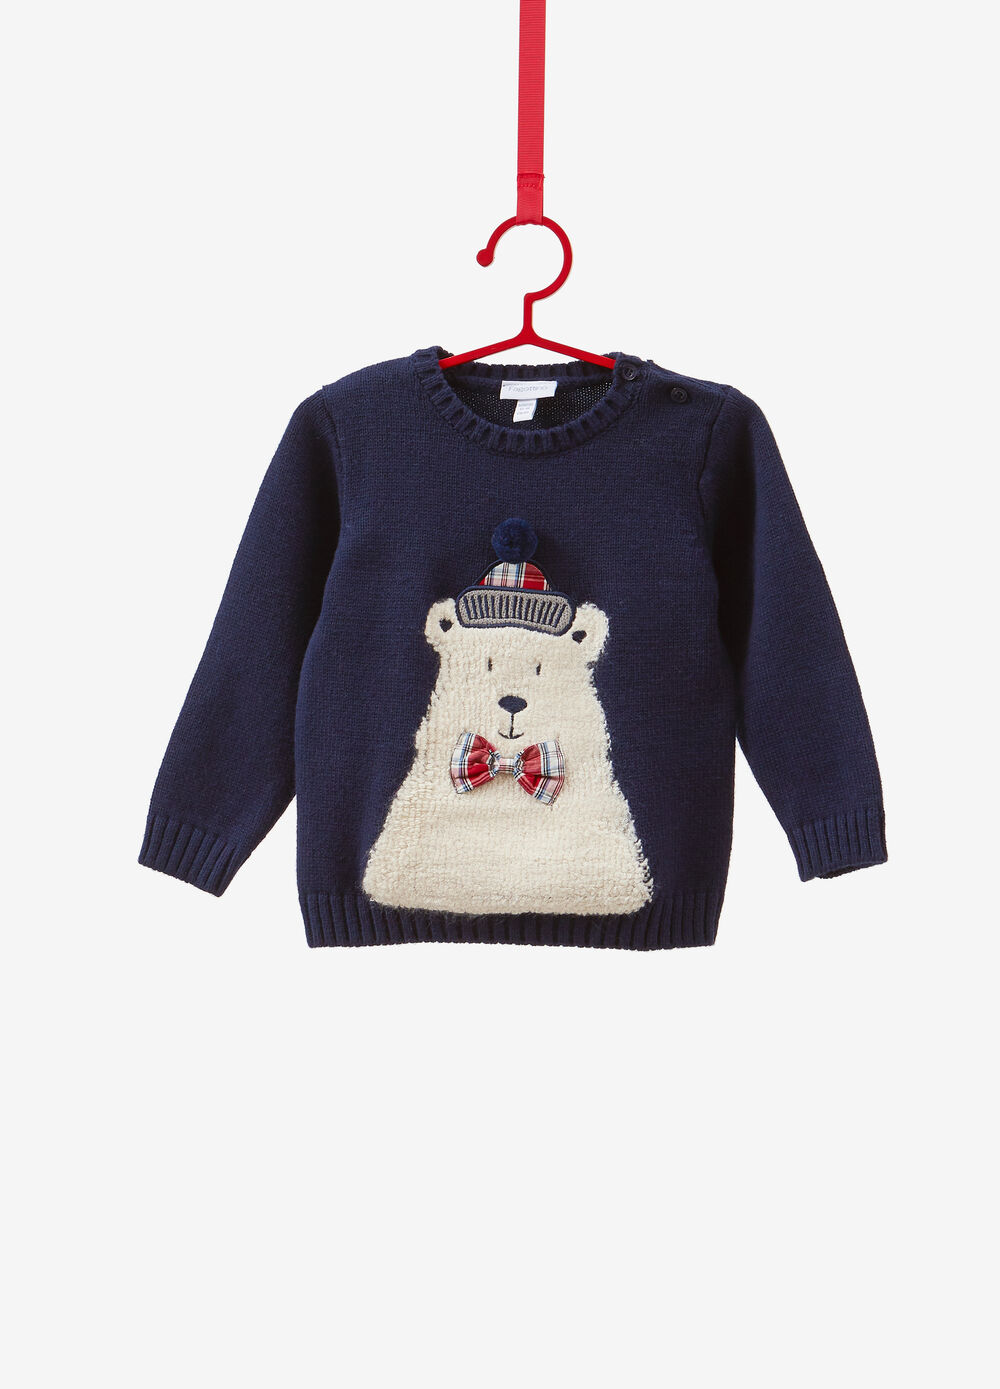 Christmas sweater with bow and teddy bear patch